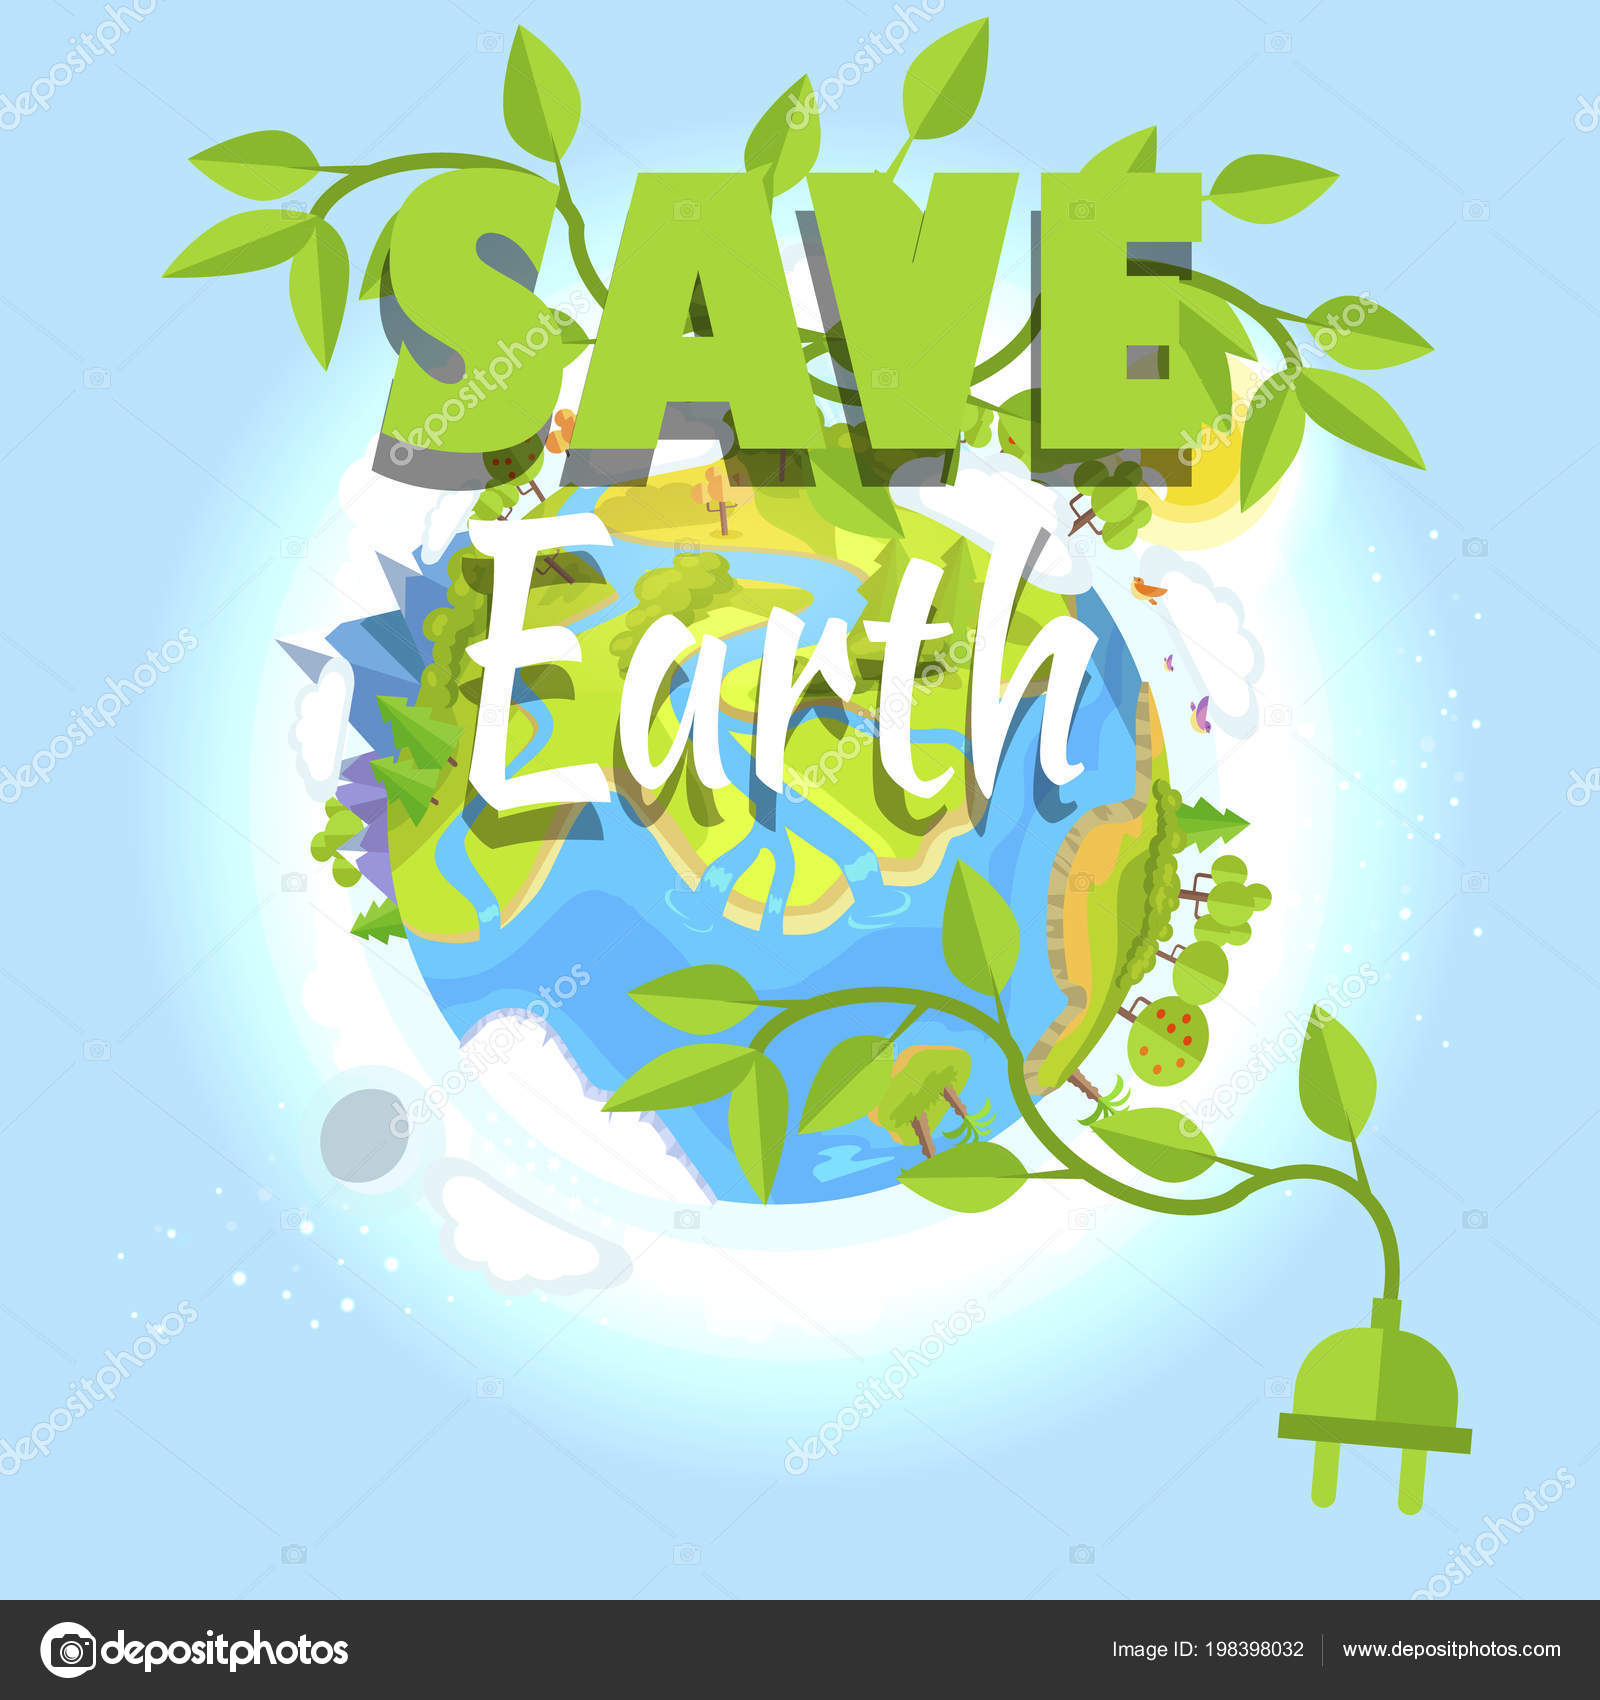 Pictures: save electricity | Save Earth Logo Design with